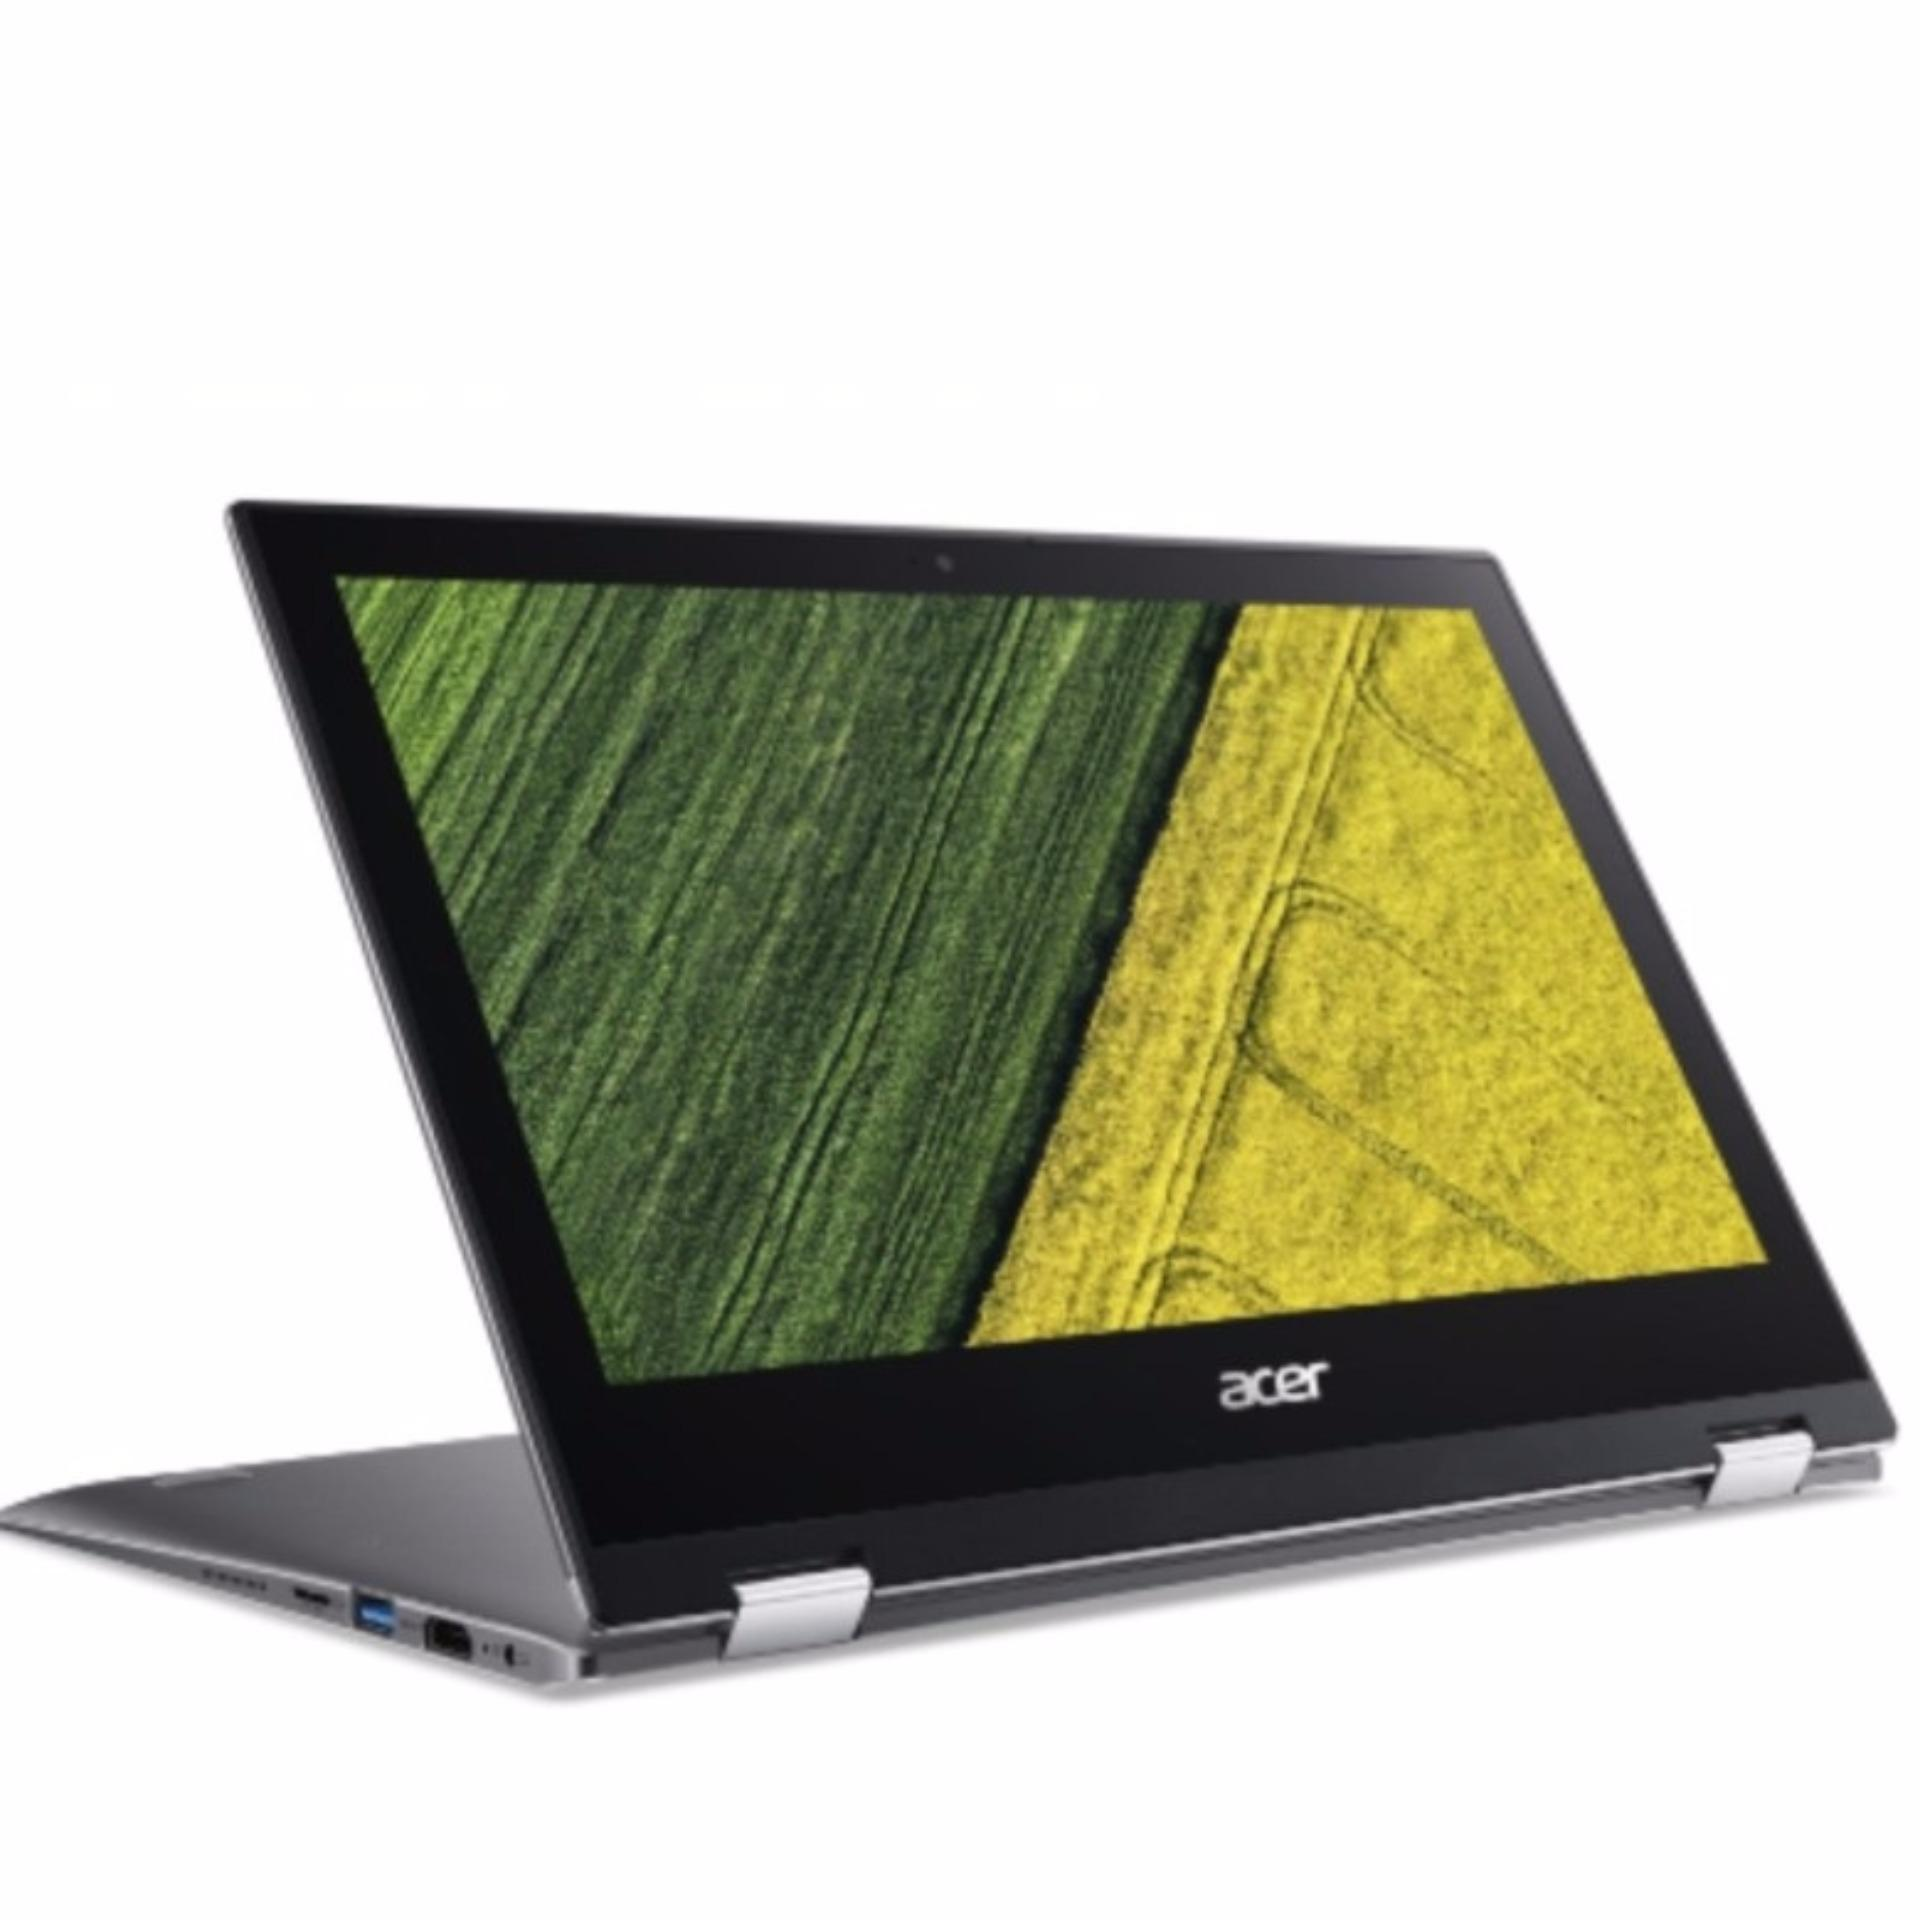 Acer Spin 1 SP111-32N-P2V2 2 in 1 Convertible Laptop 11.6″ FHD IPS Touch 4GB RAM 128GB eMMC with Stylus